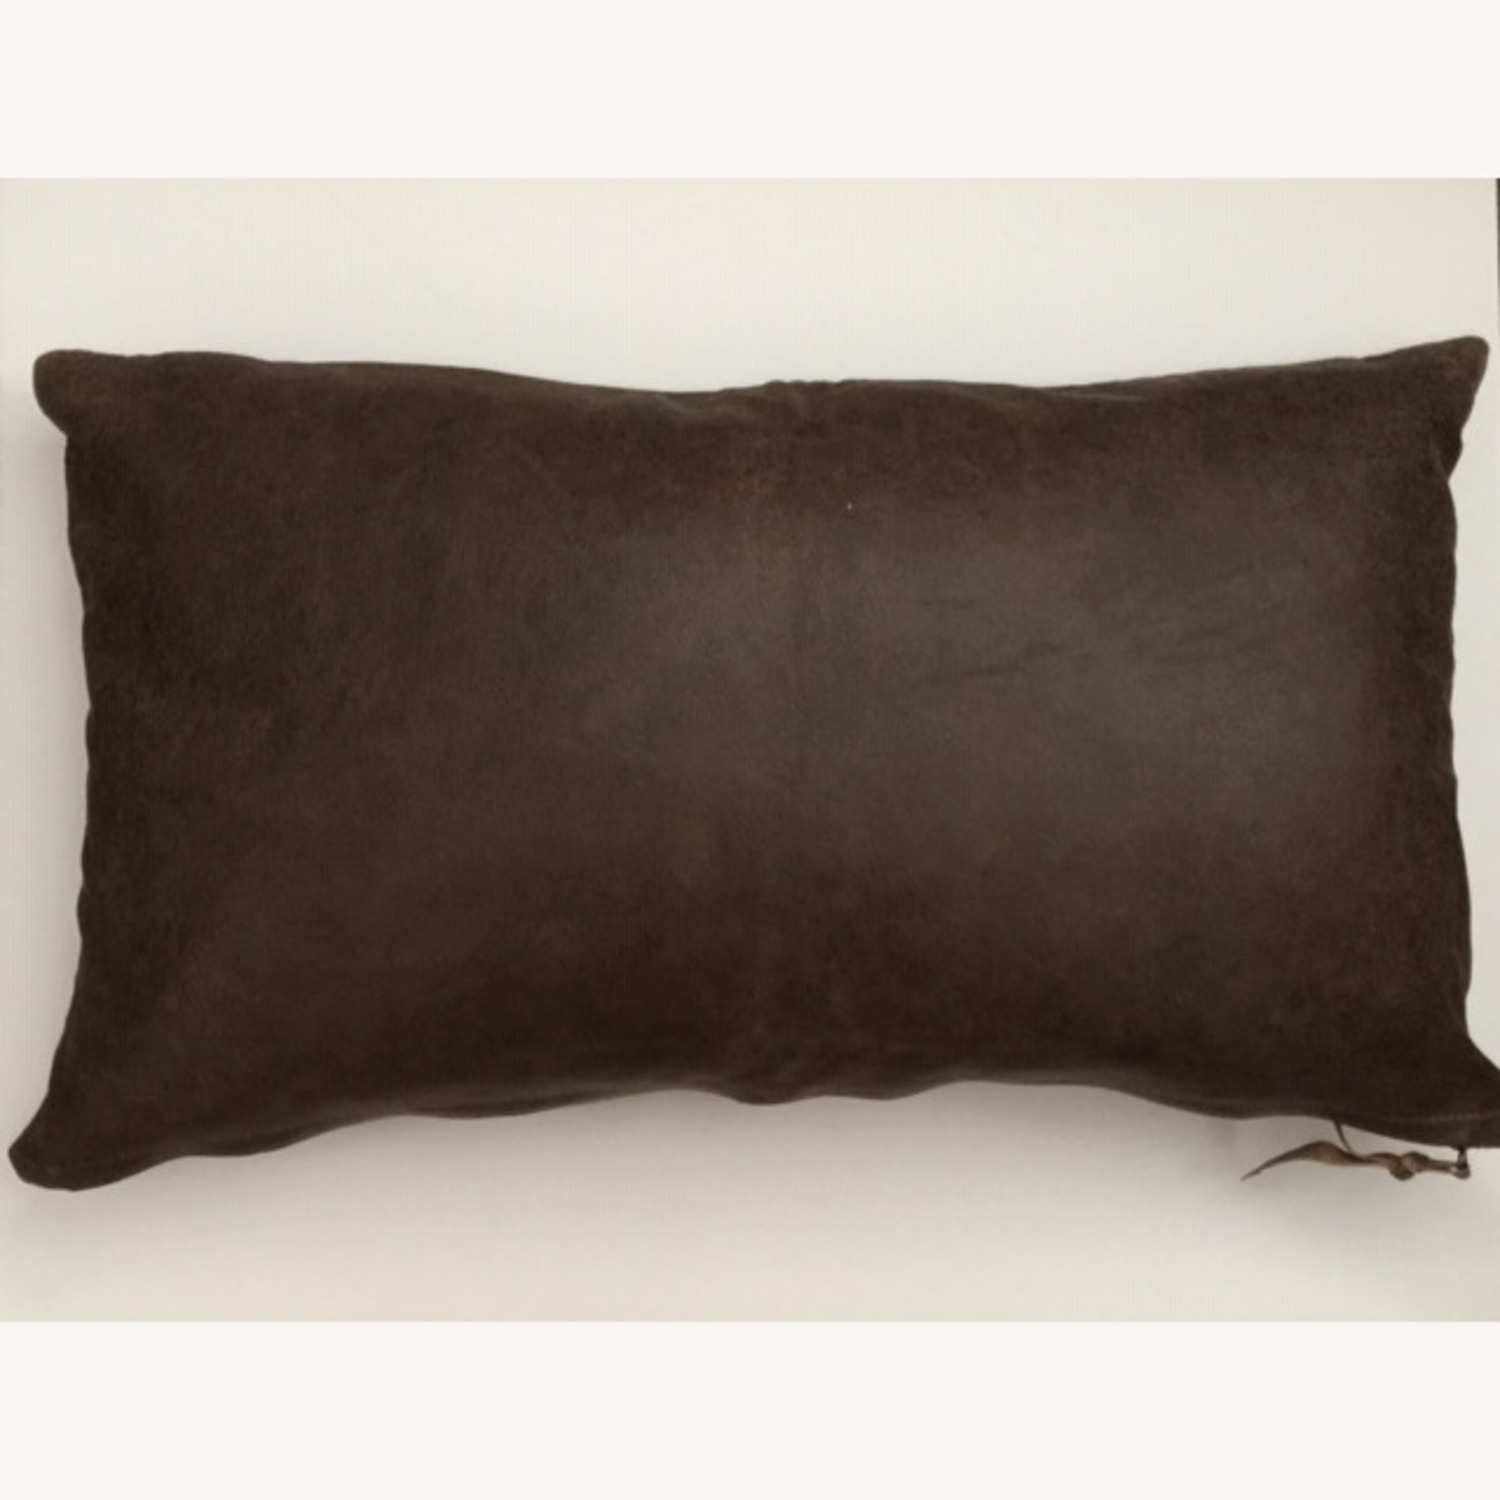 Botanical Leaf Embroidered Leather Pillow